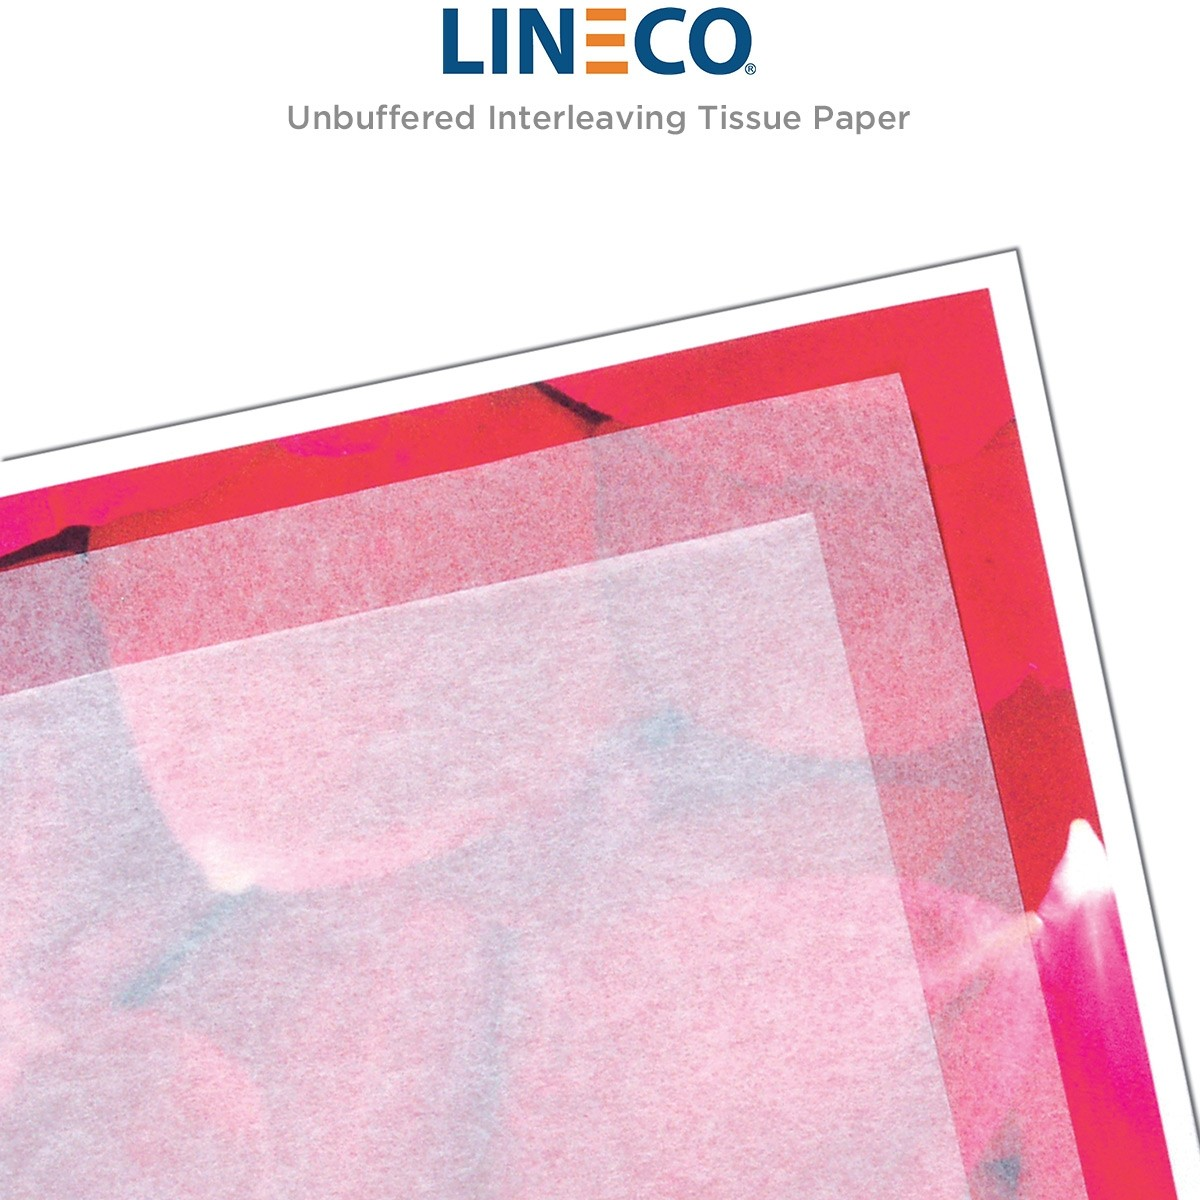 Lineco Unbuffered Interleaving Tissue Paper